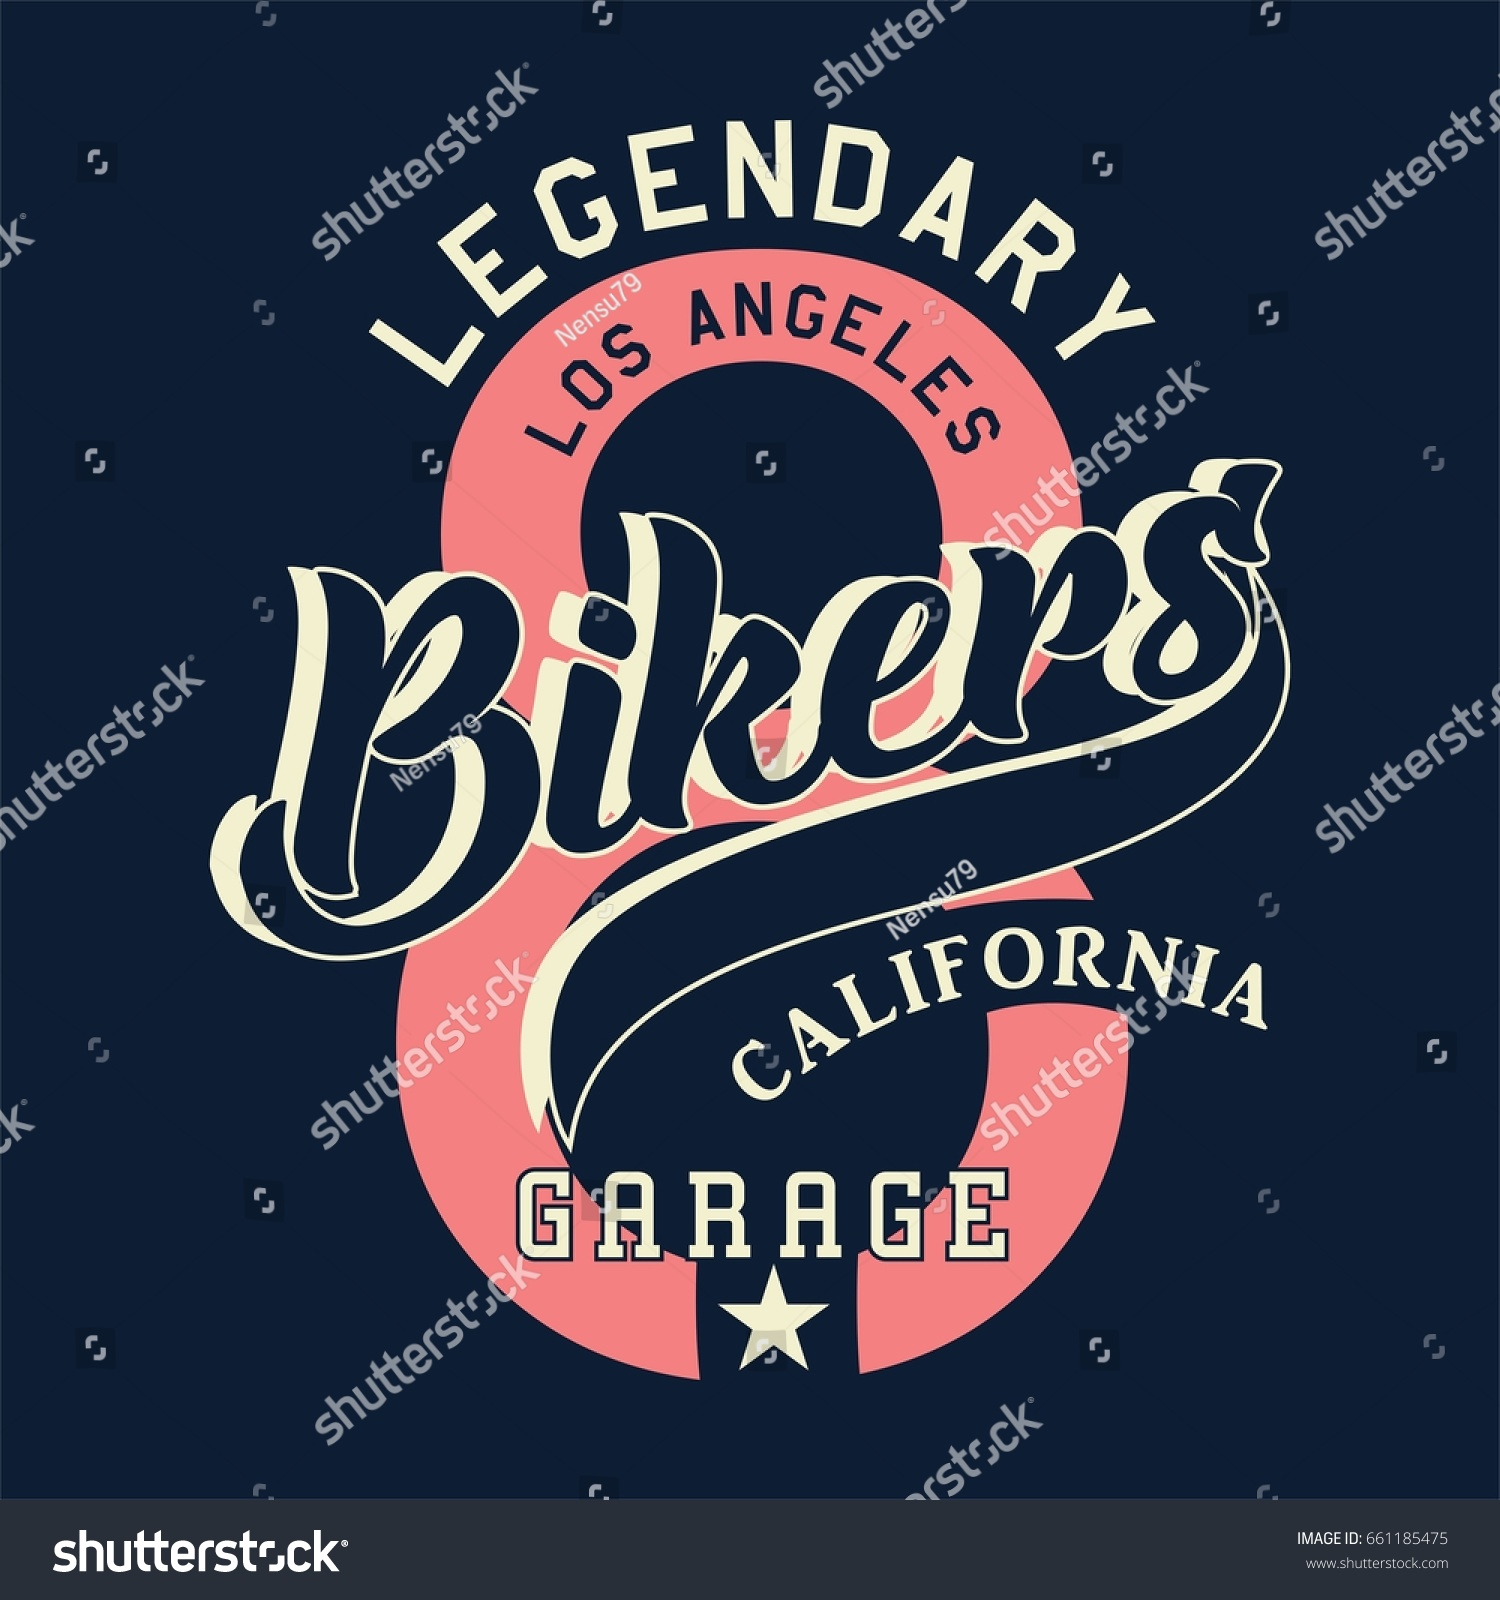 Design t shirts los angeles - Design Alphabet And Numbers Legendary Los Angeles Bikers California For T Shirts